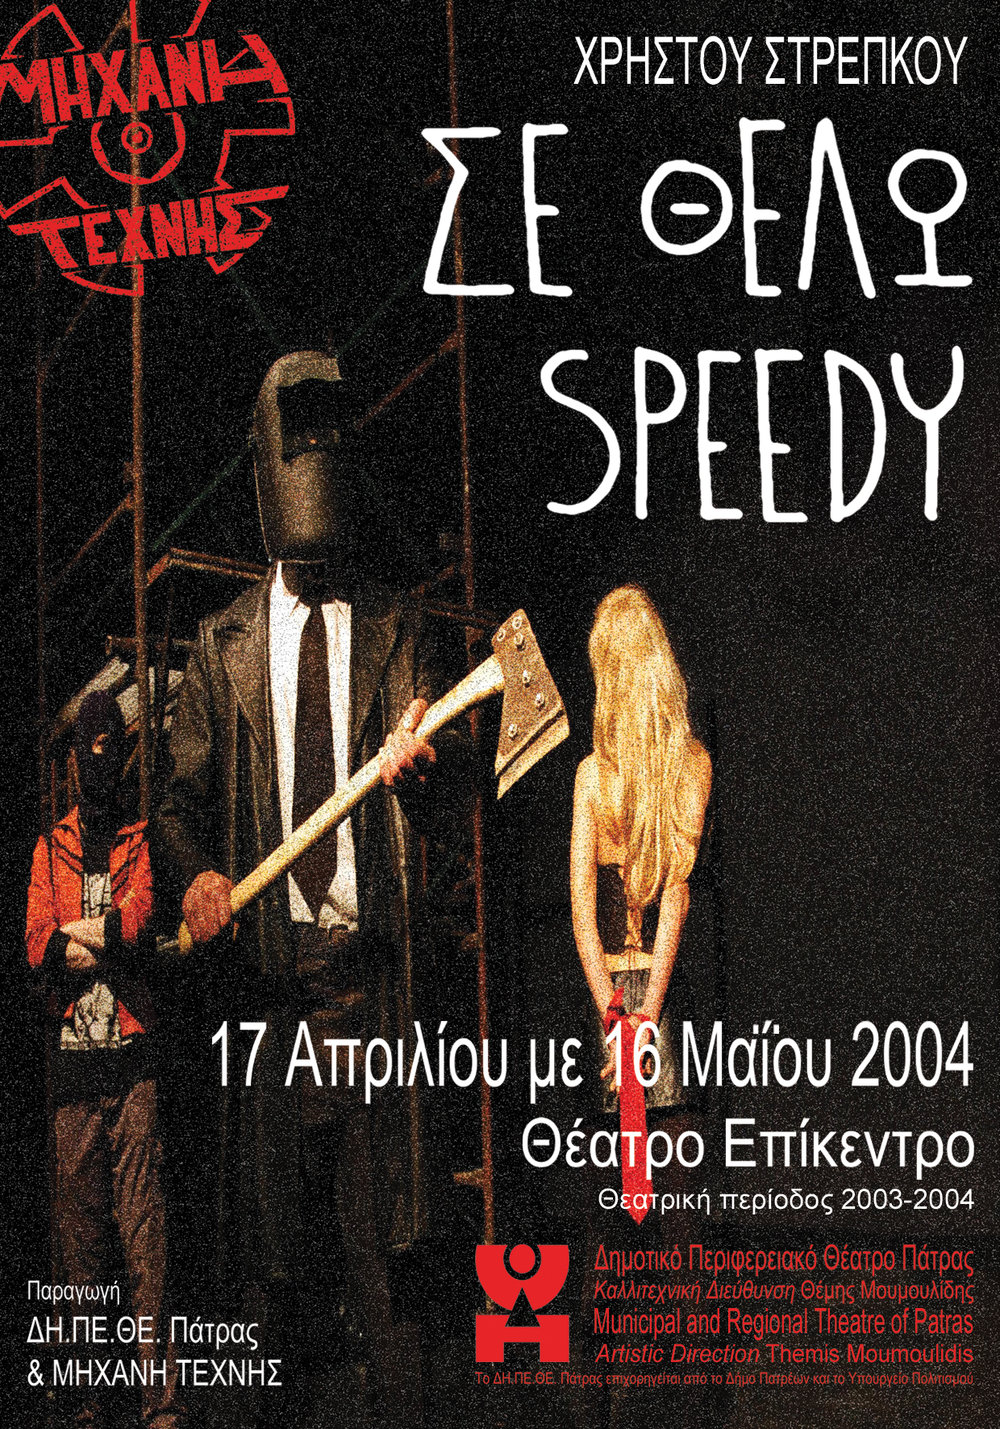 2004 I Want You Speedy by Christos Strepkos Flyer Front.jpg